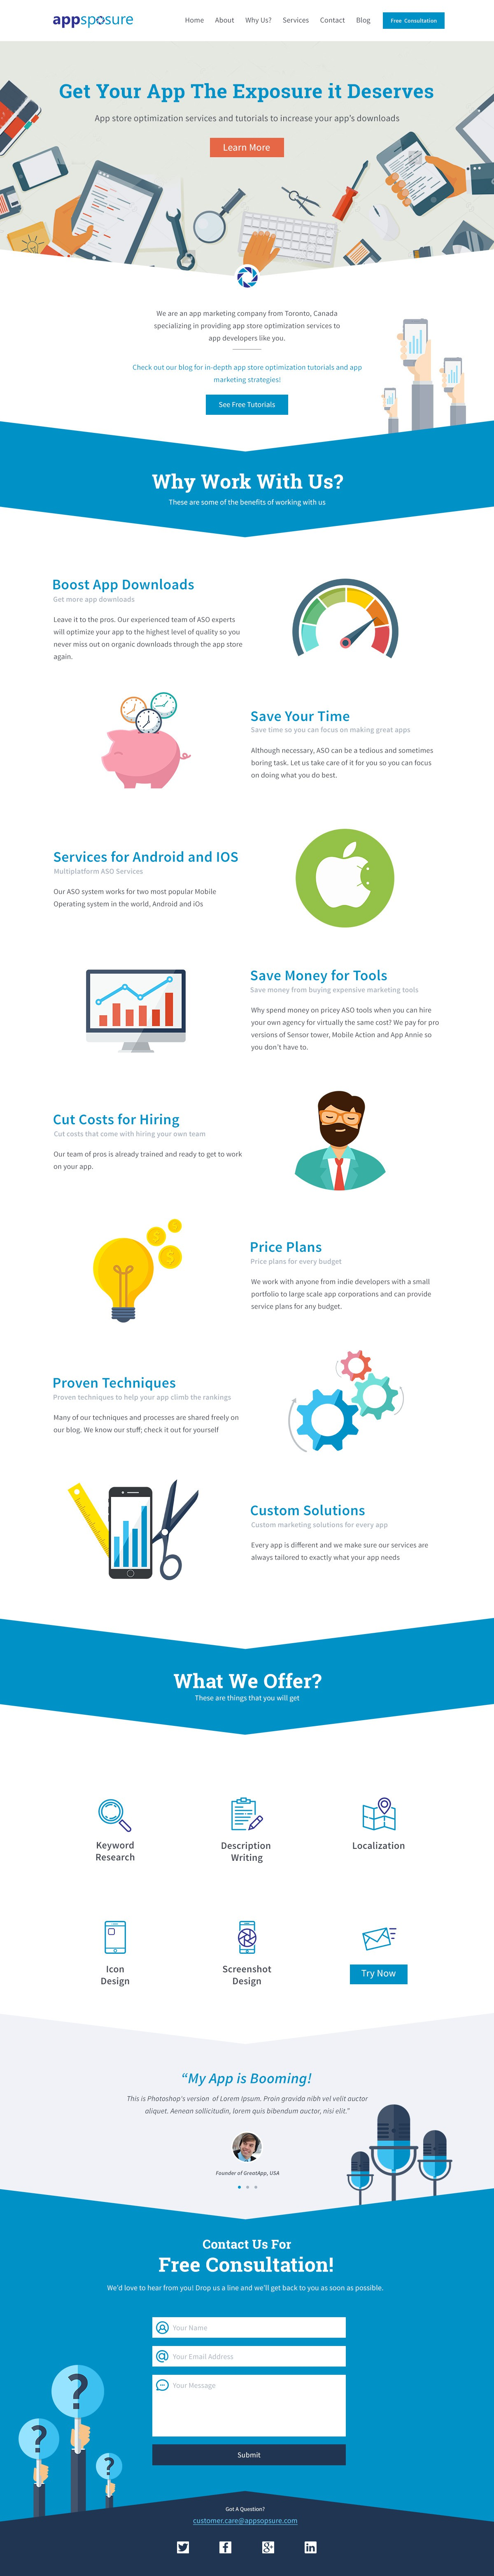 Create a stunning landing page/homepage for a new marketing startup